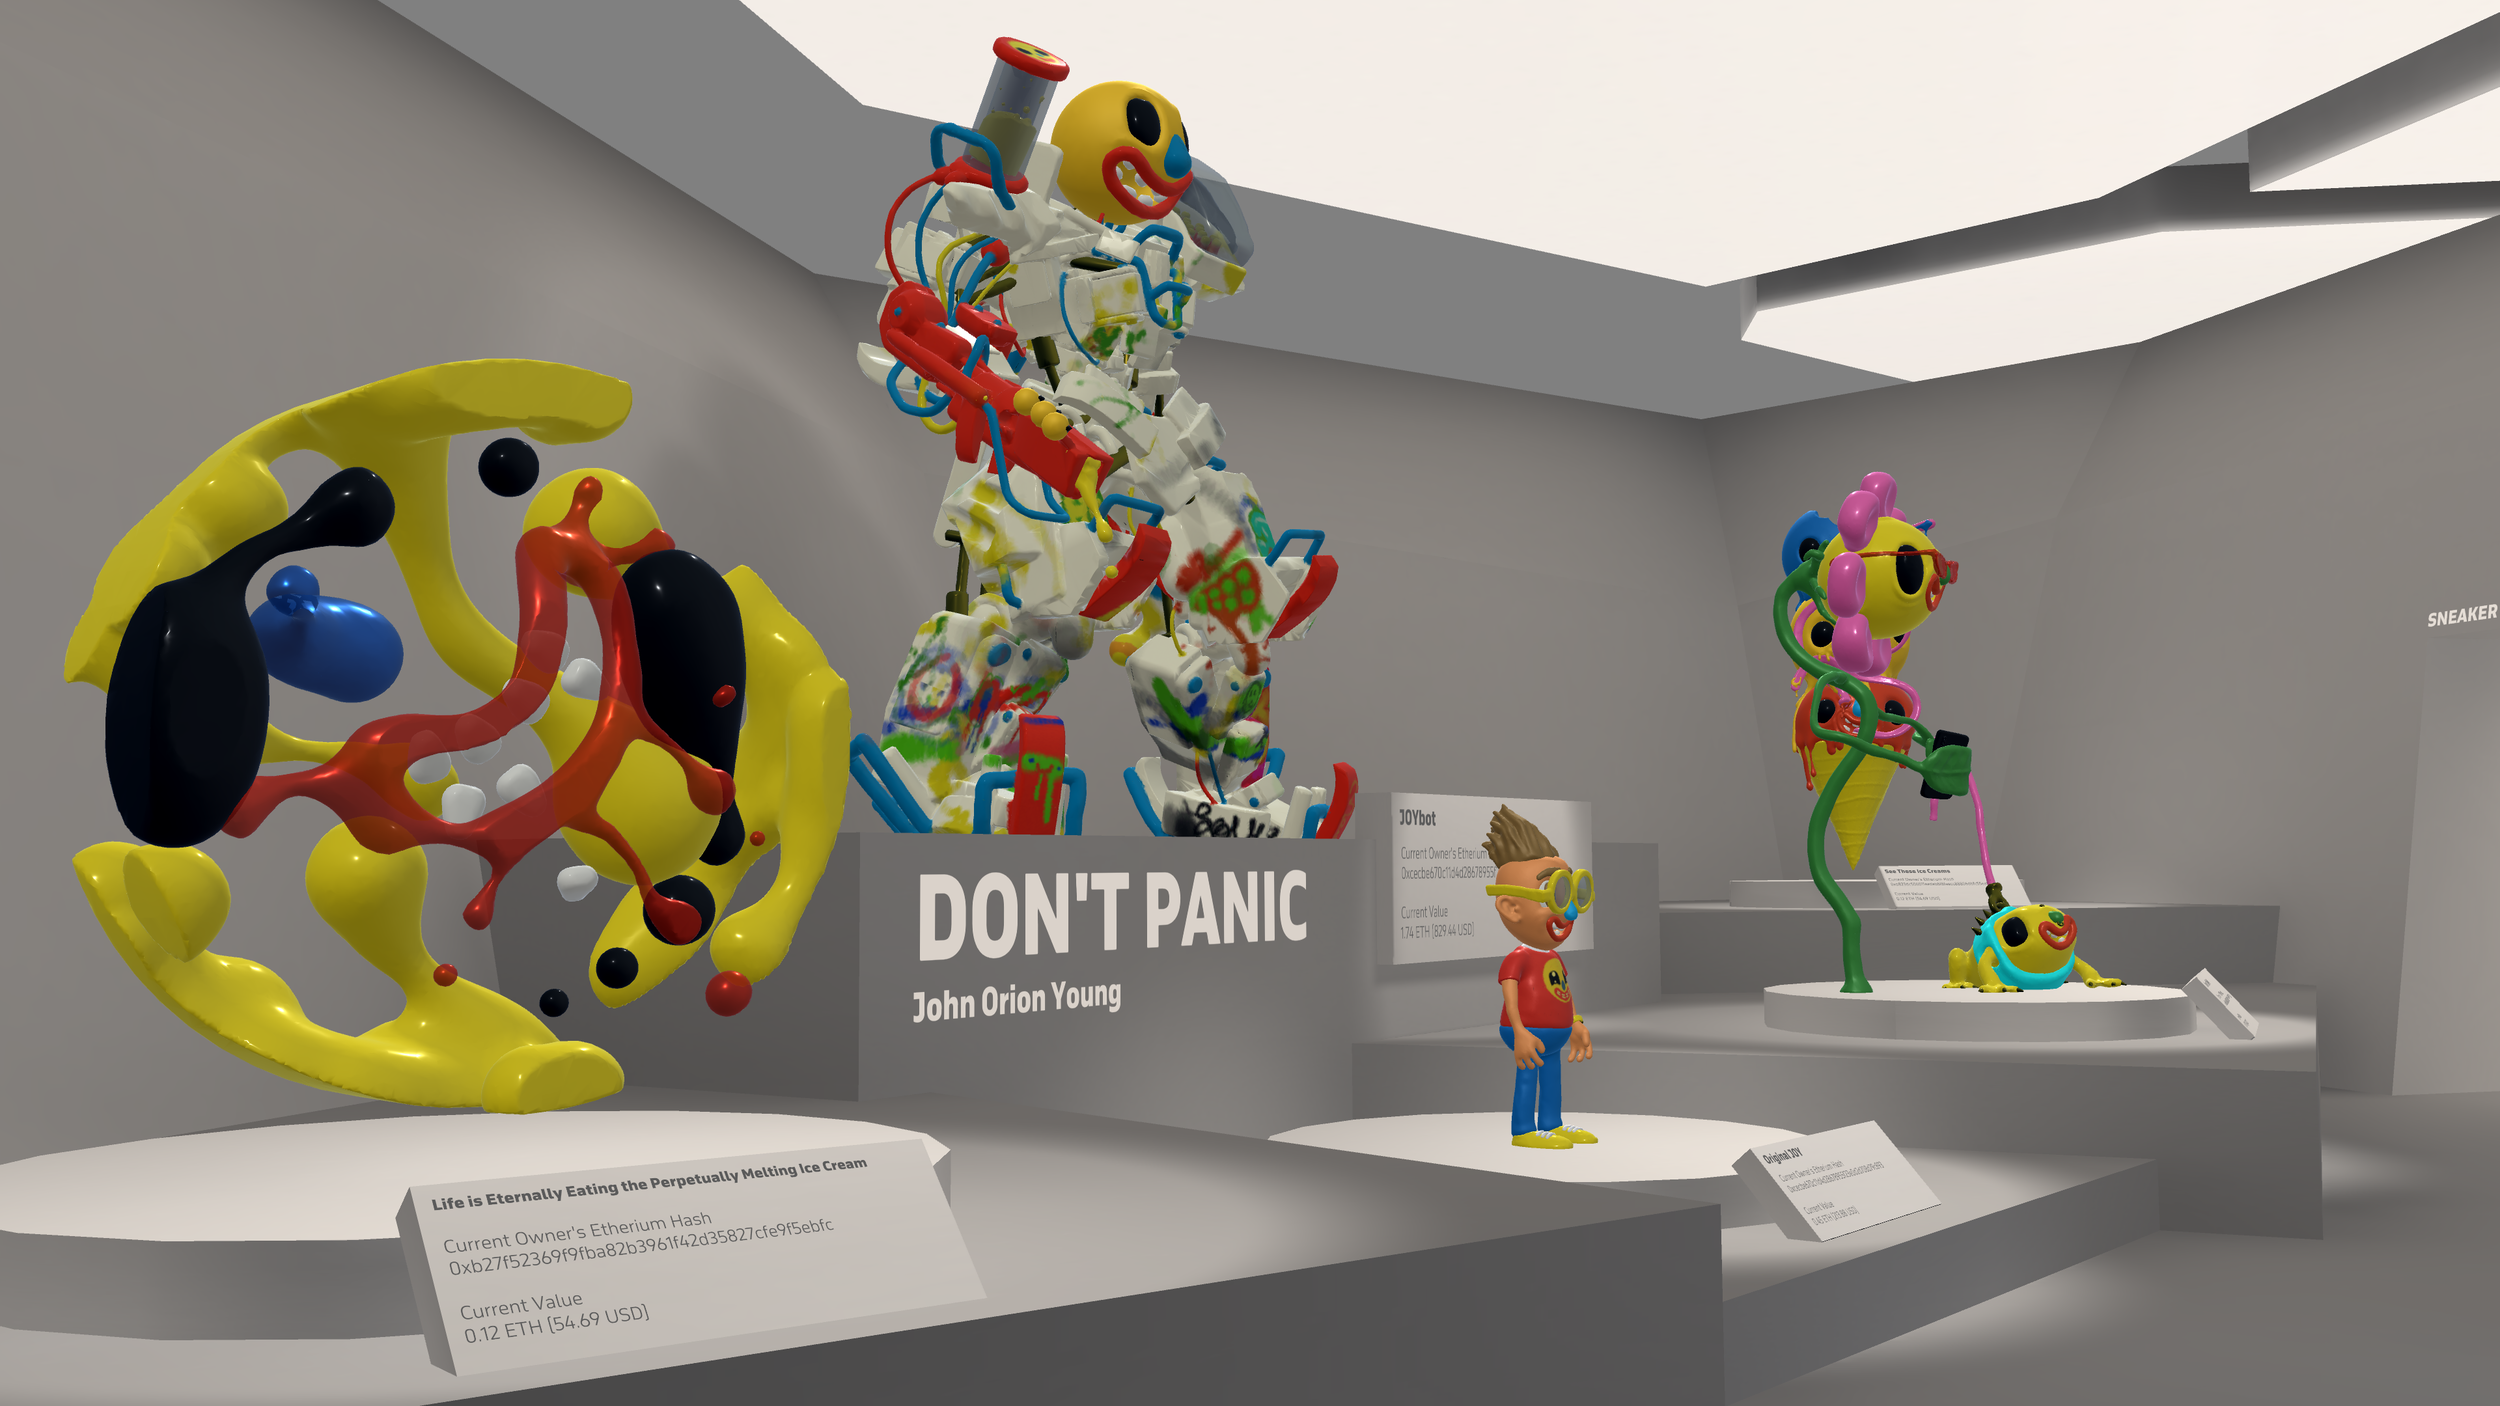 Don't Panic , an exhibit featuring a few pieces created by John Orion Young in Oculus Medium